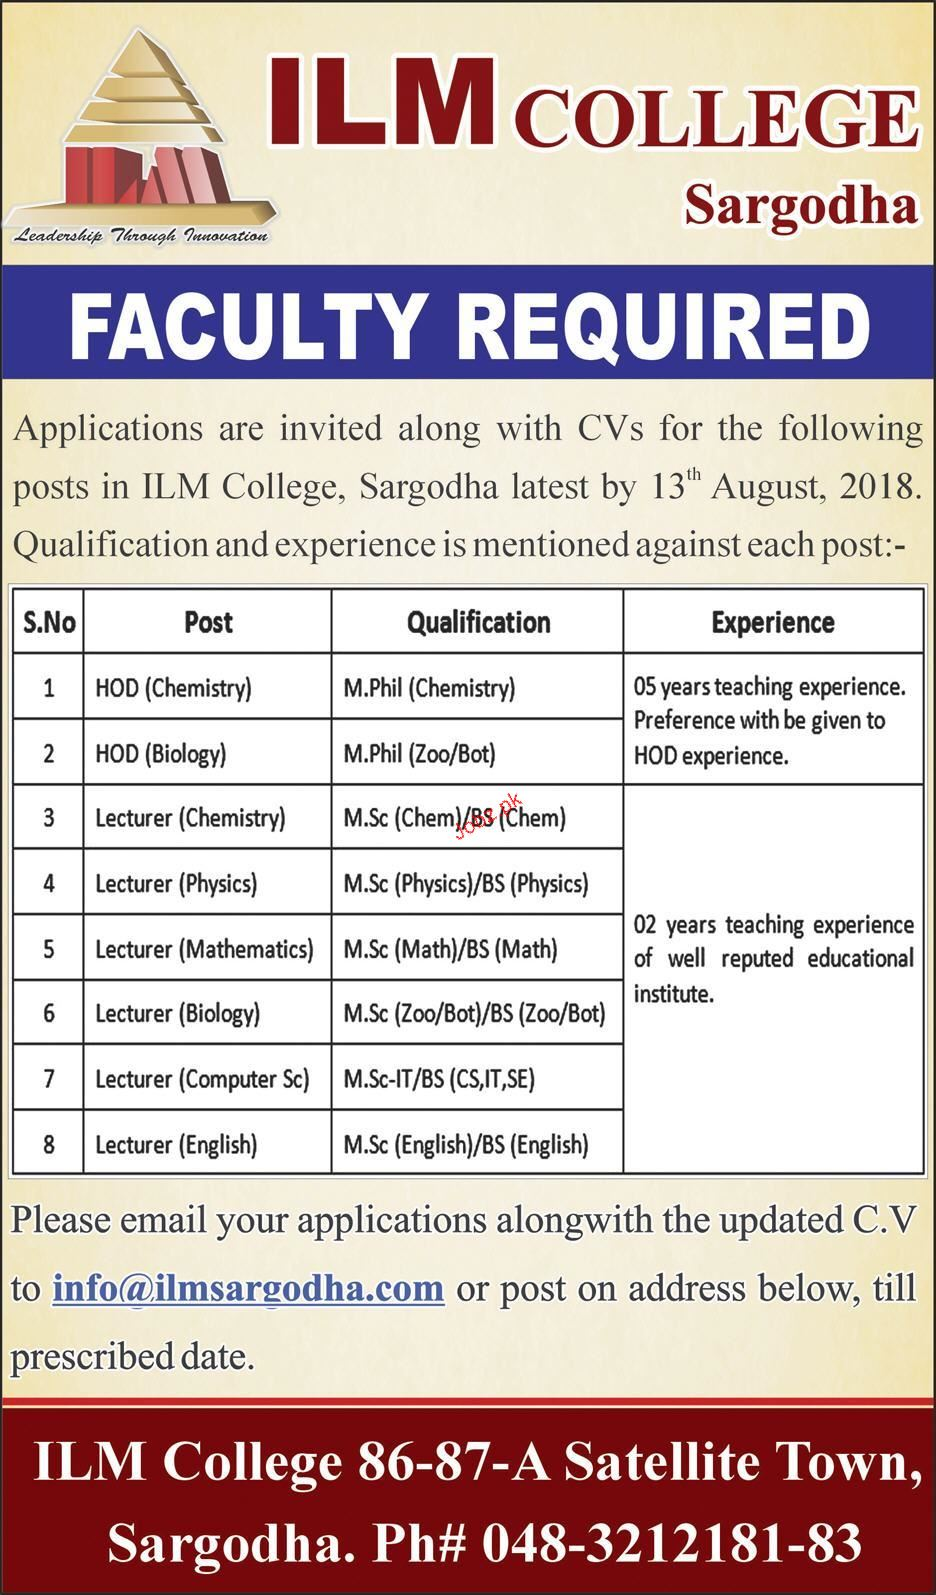 ILM College Sargodha Teaching Jobs